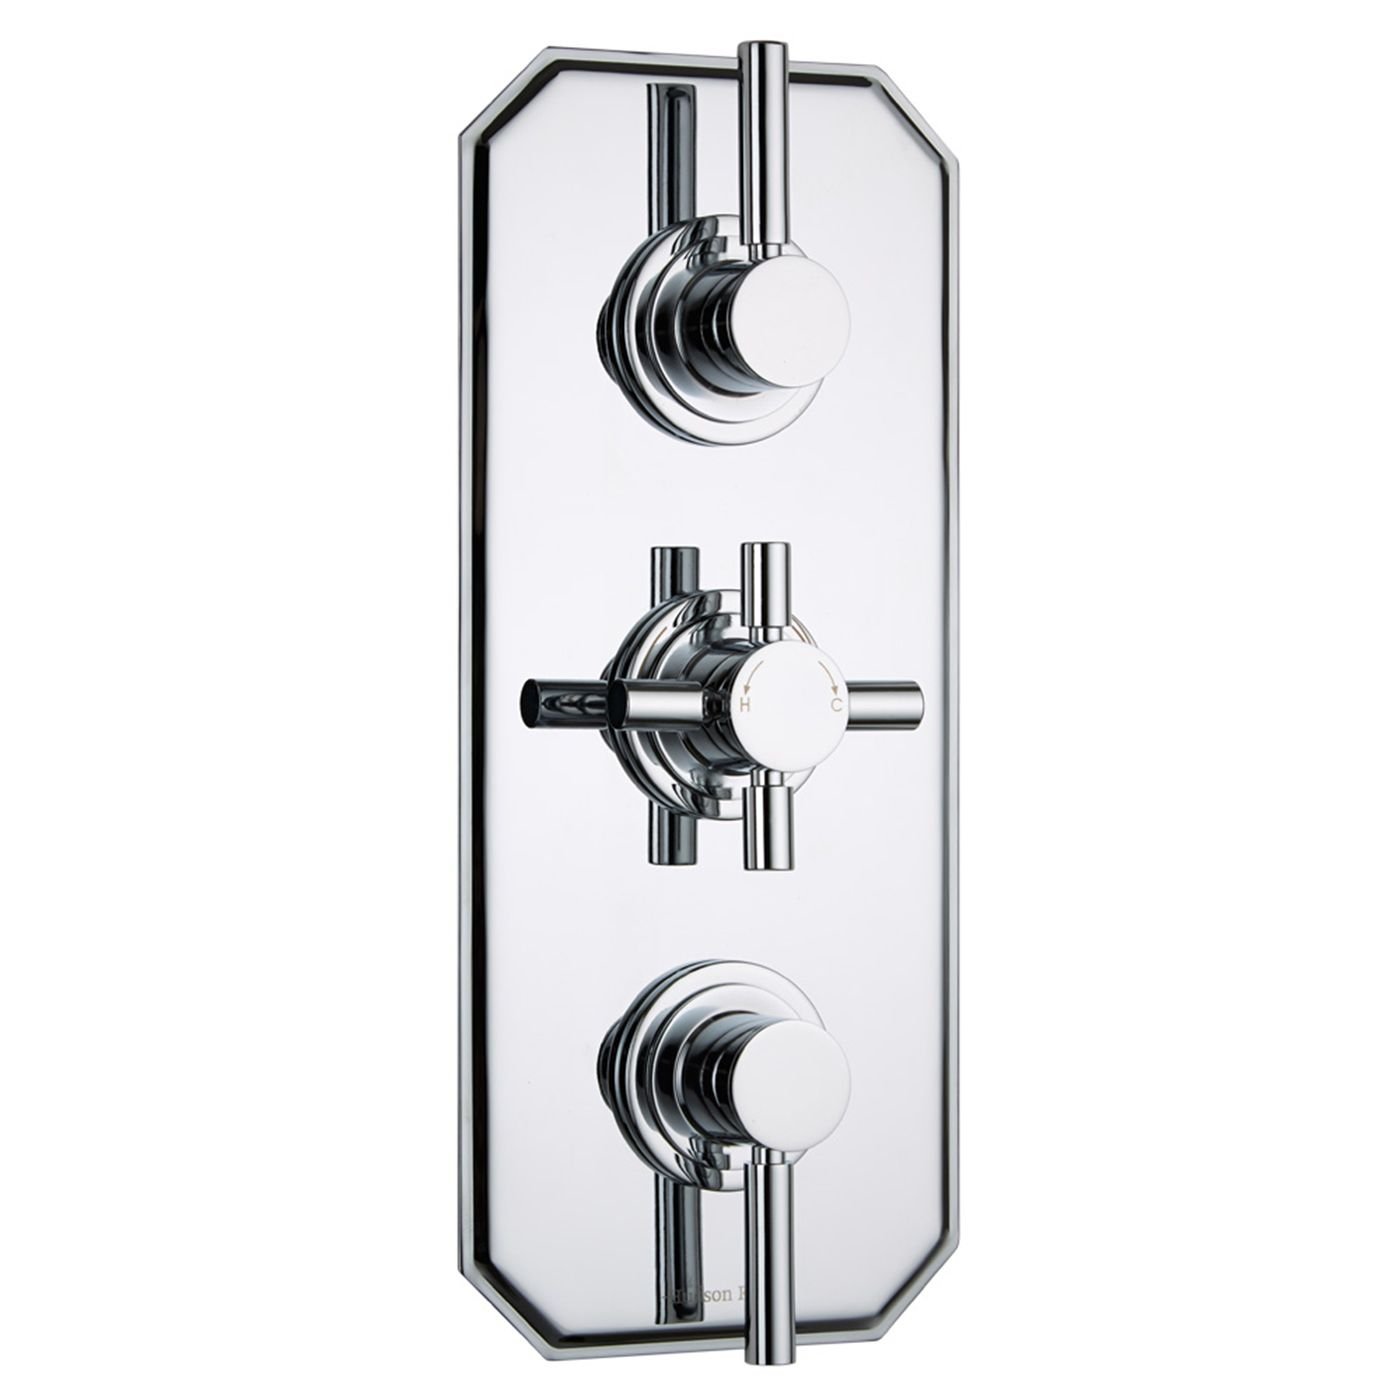 Tec Concealed 3 Outlet Triple with Diverter Thermostatic Shower Valve (Traditional Plate)